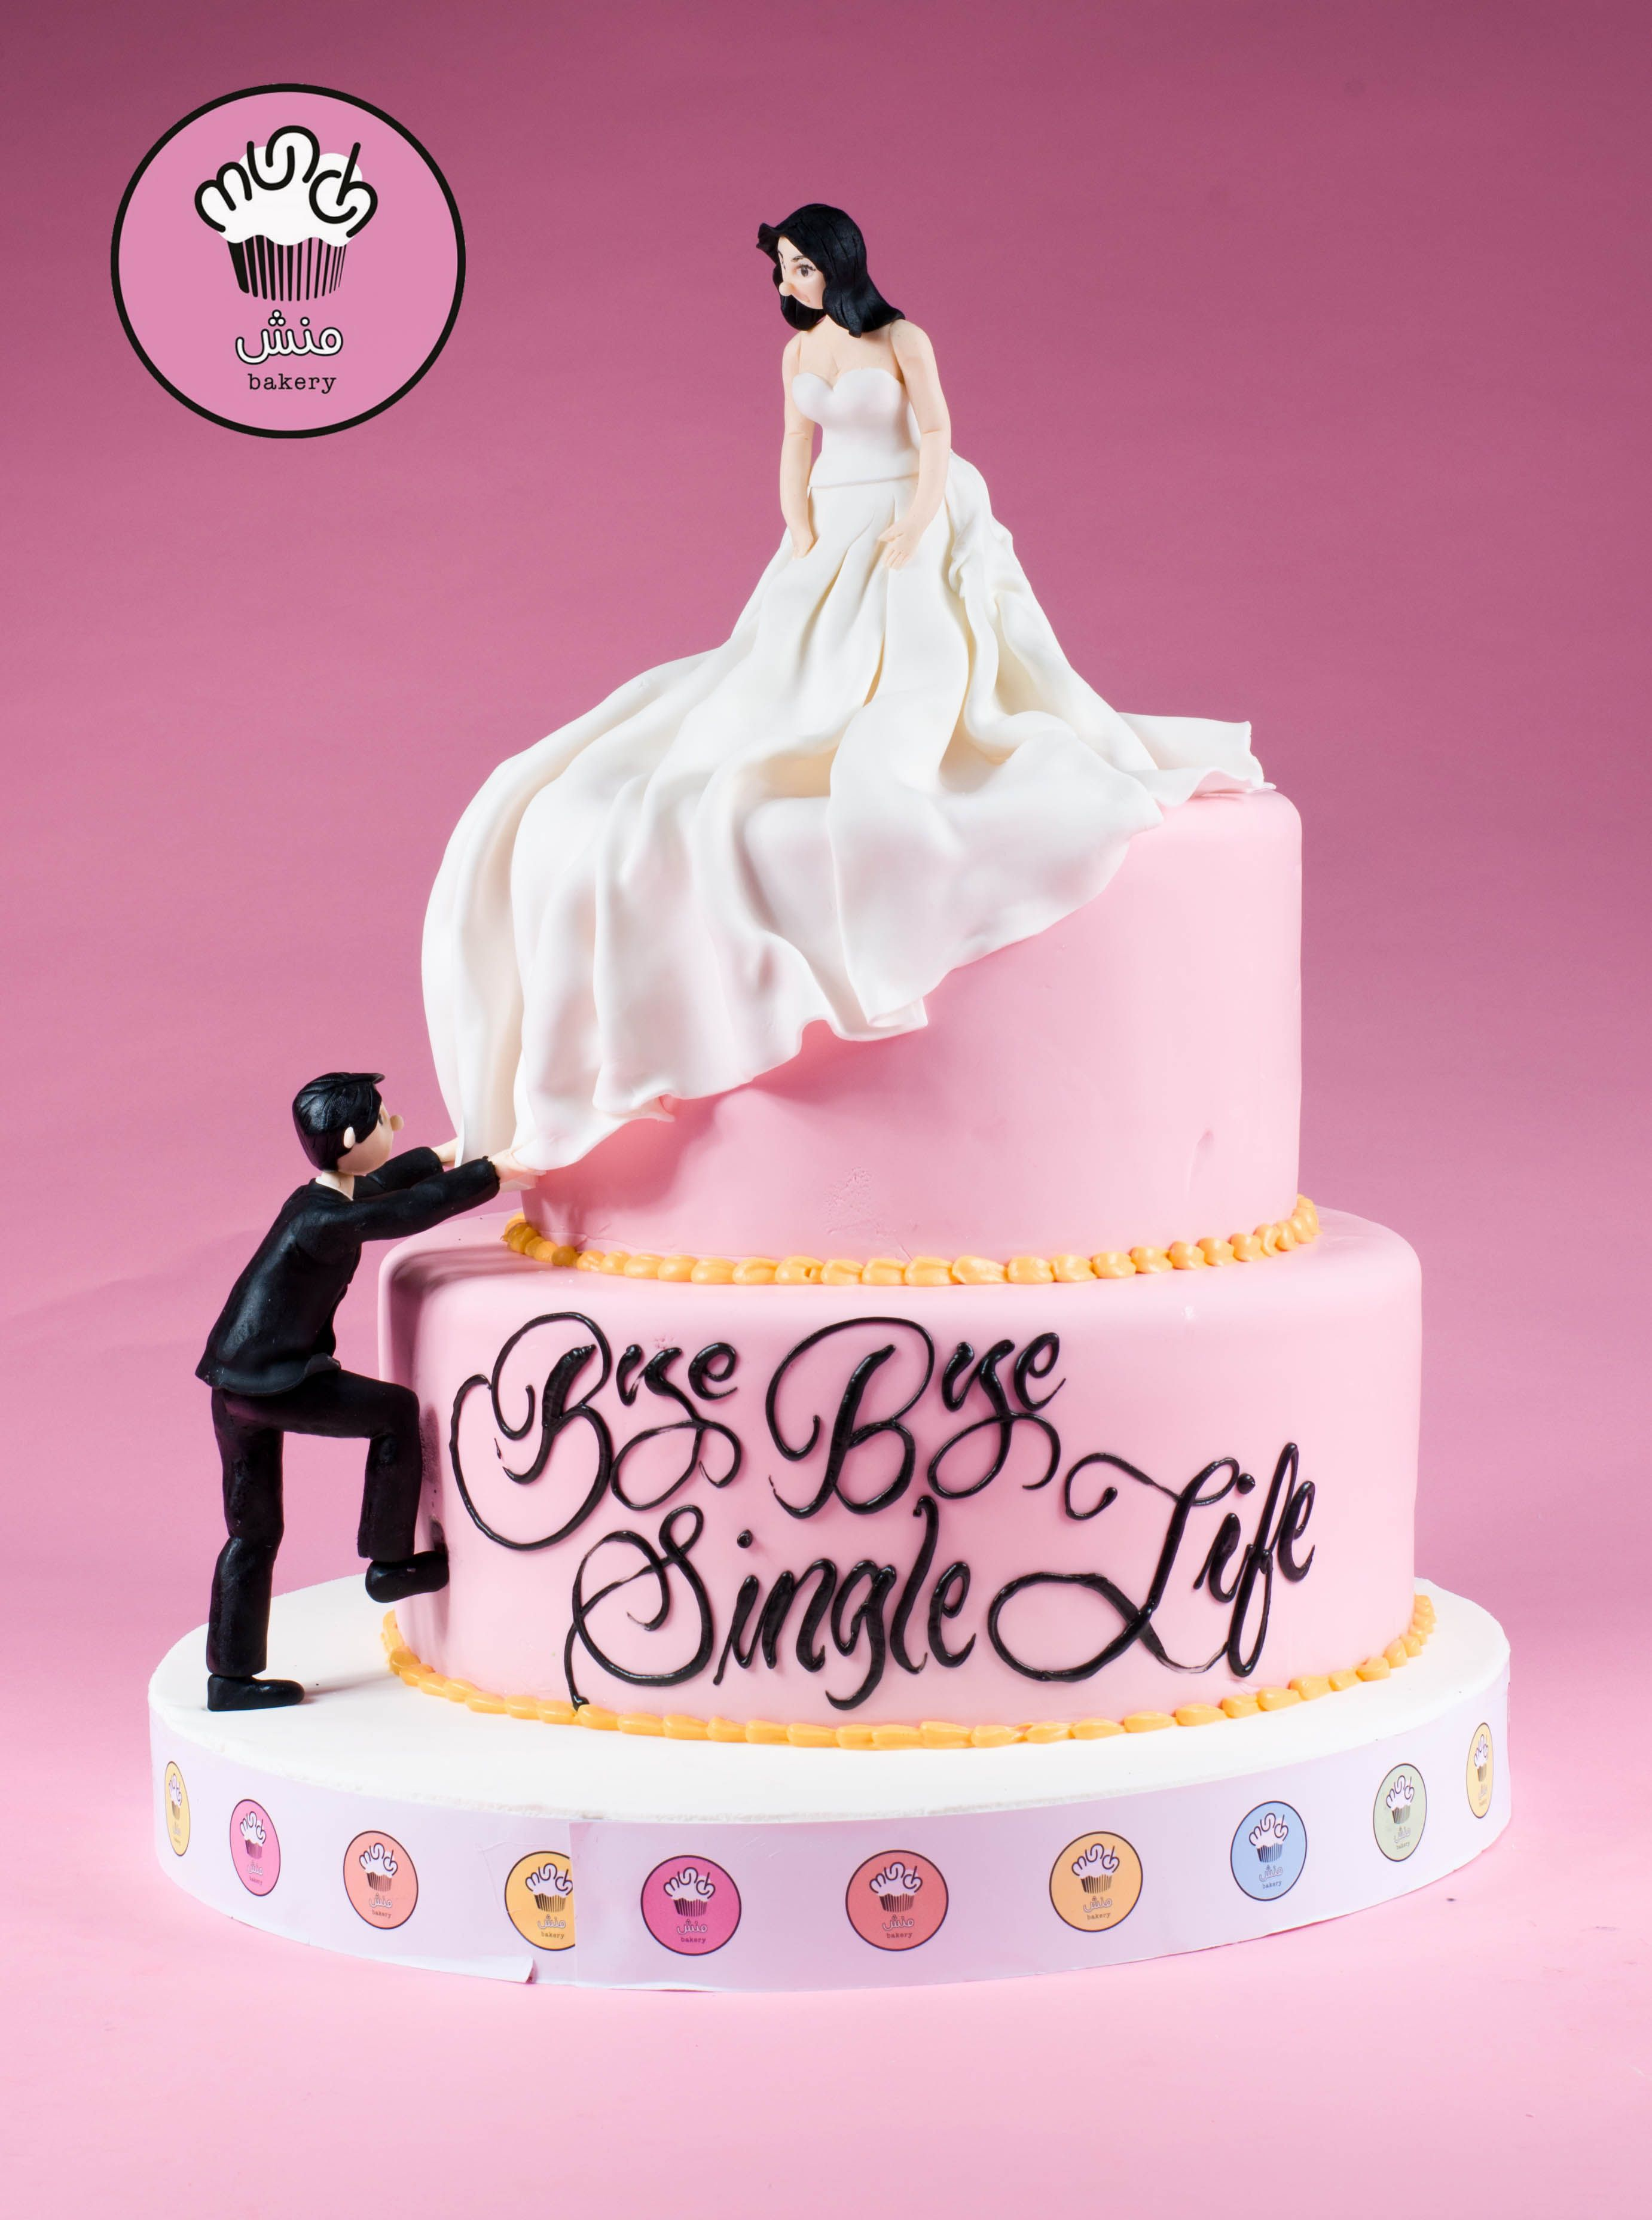 Create The Wedding Or Engagement Cake Of Your Dreams With Munch Bakery Weddings